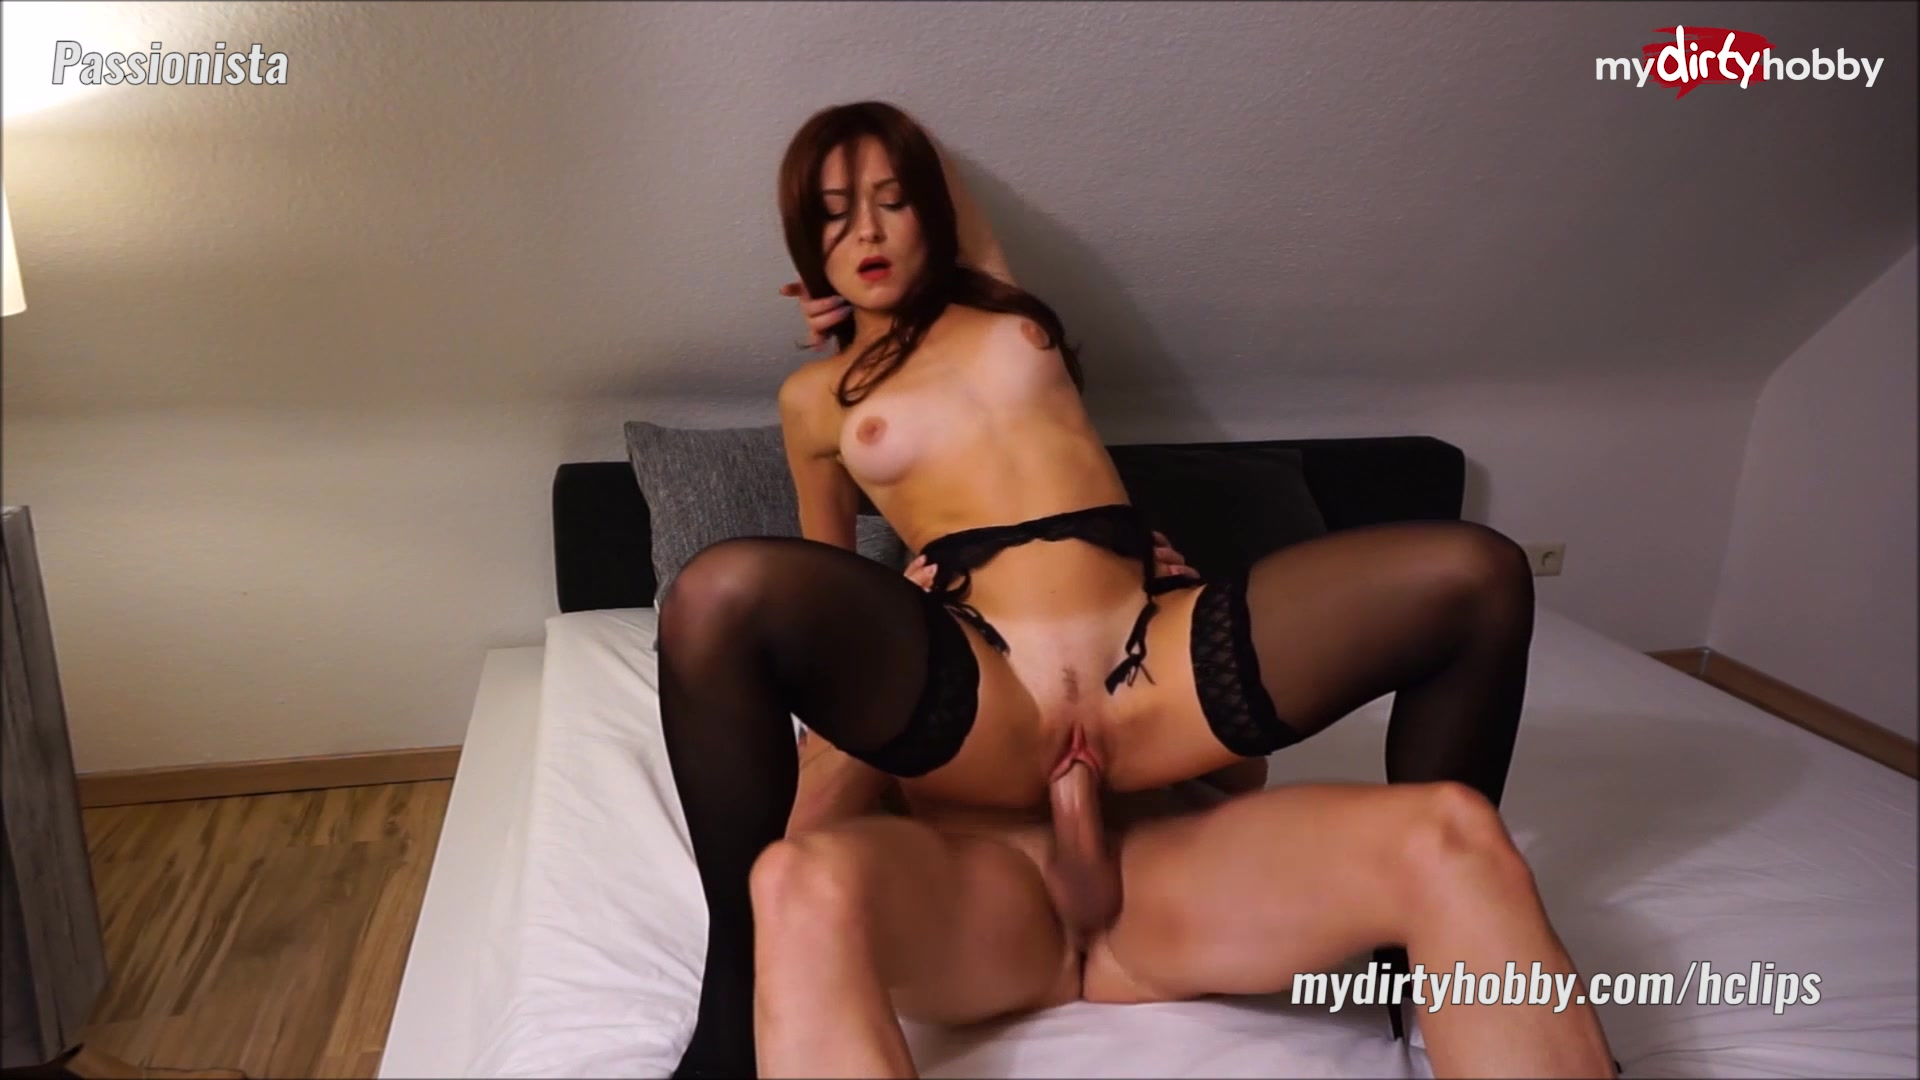 mydirtyhobby video